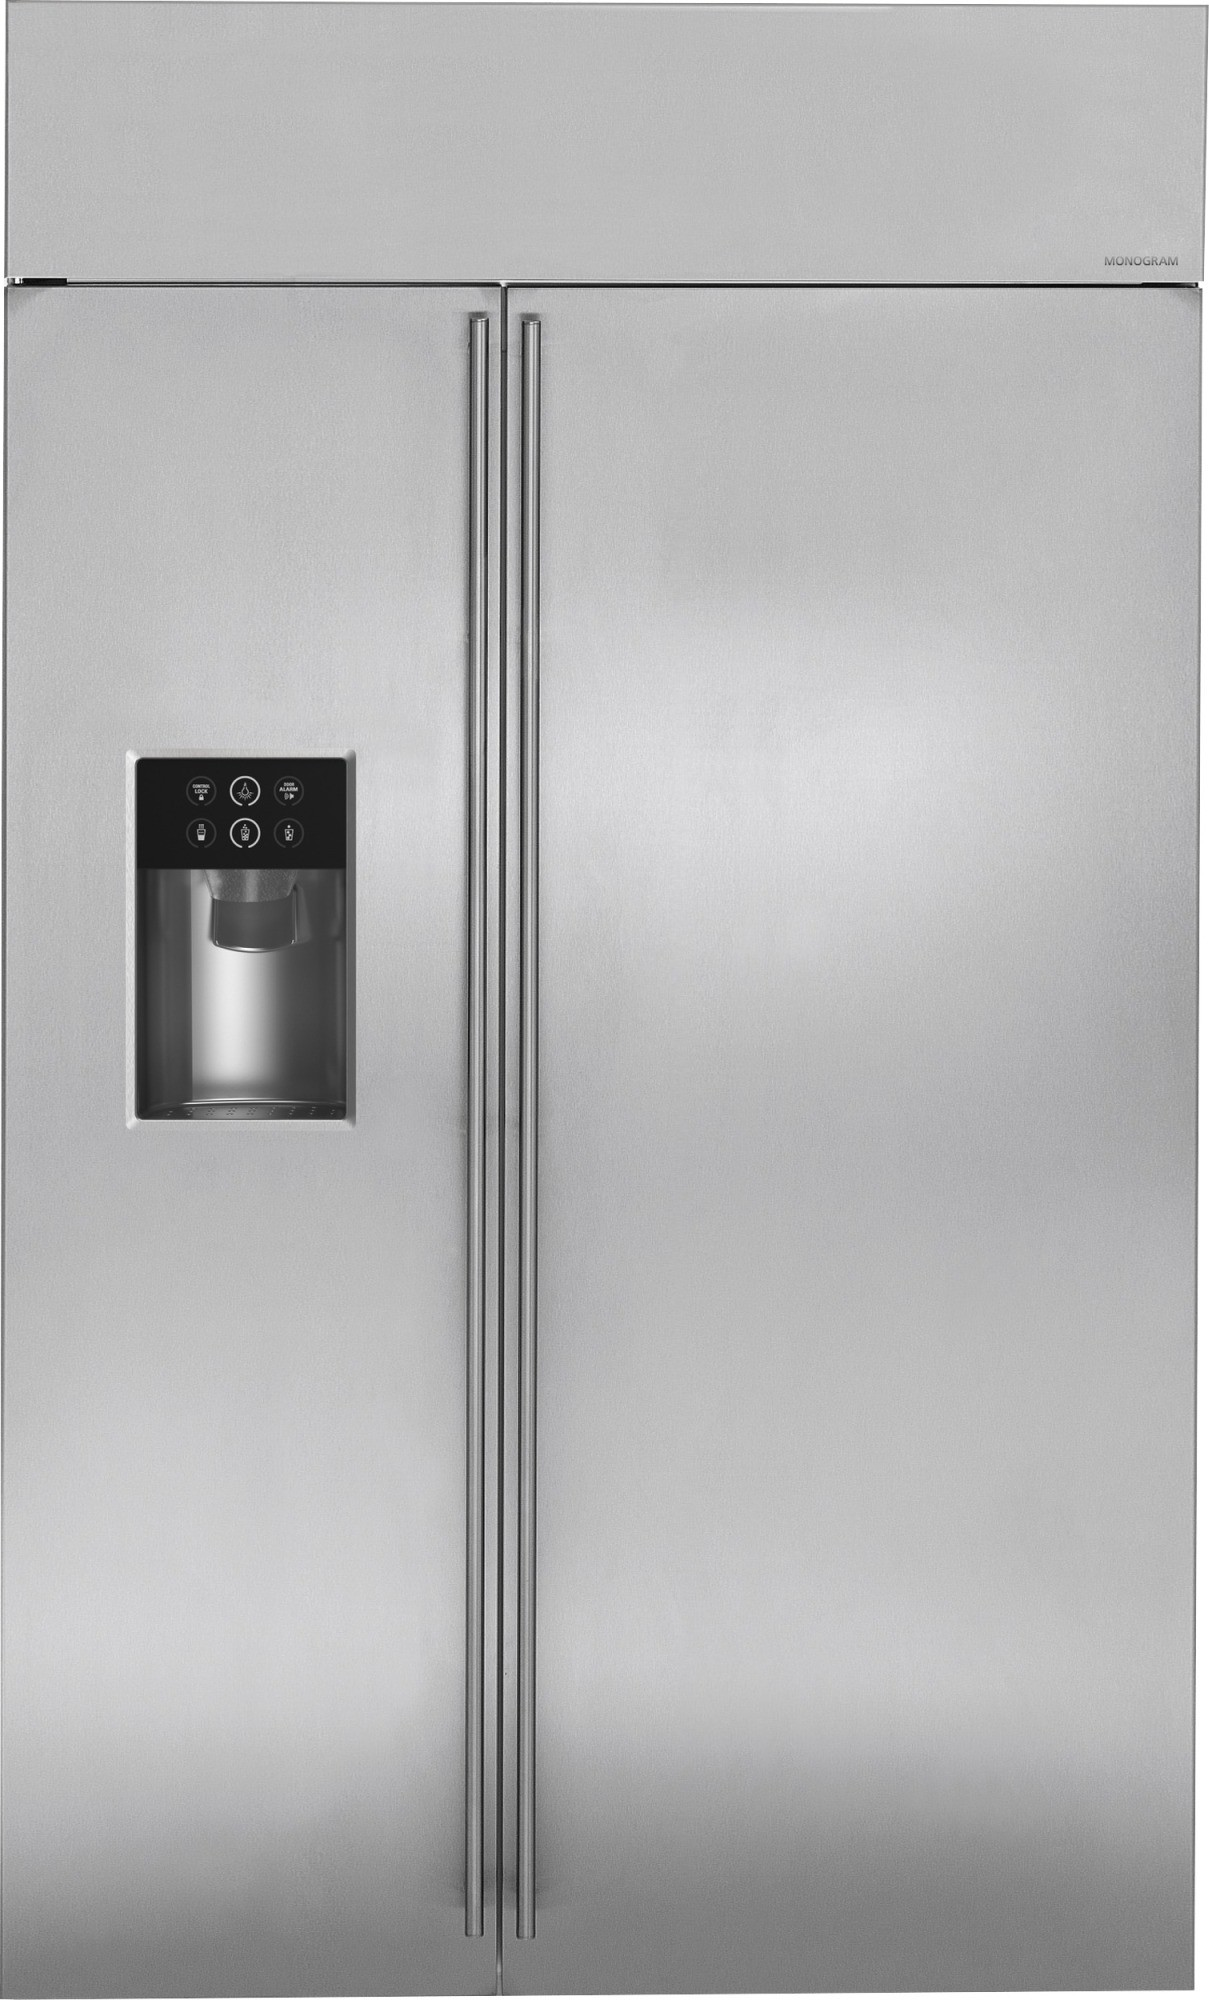 monogram ziss480dkss 48 u0026quot  built-in refrigerator with dispenser  wifi connect